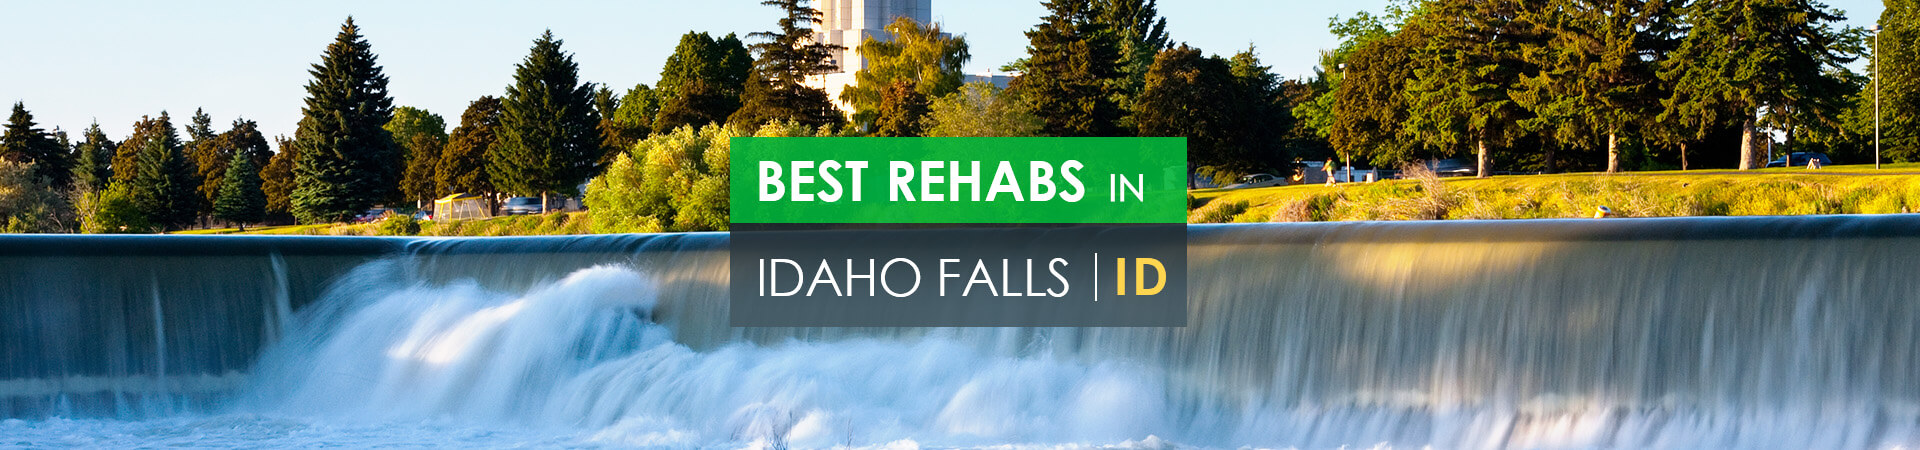 Best rehabs in Idaho Falls, ID